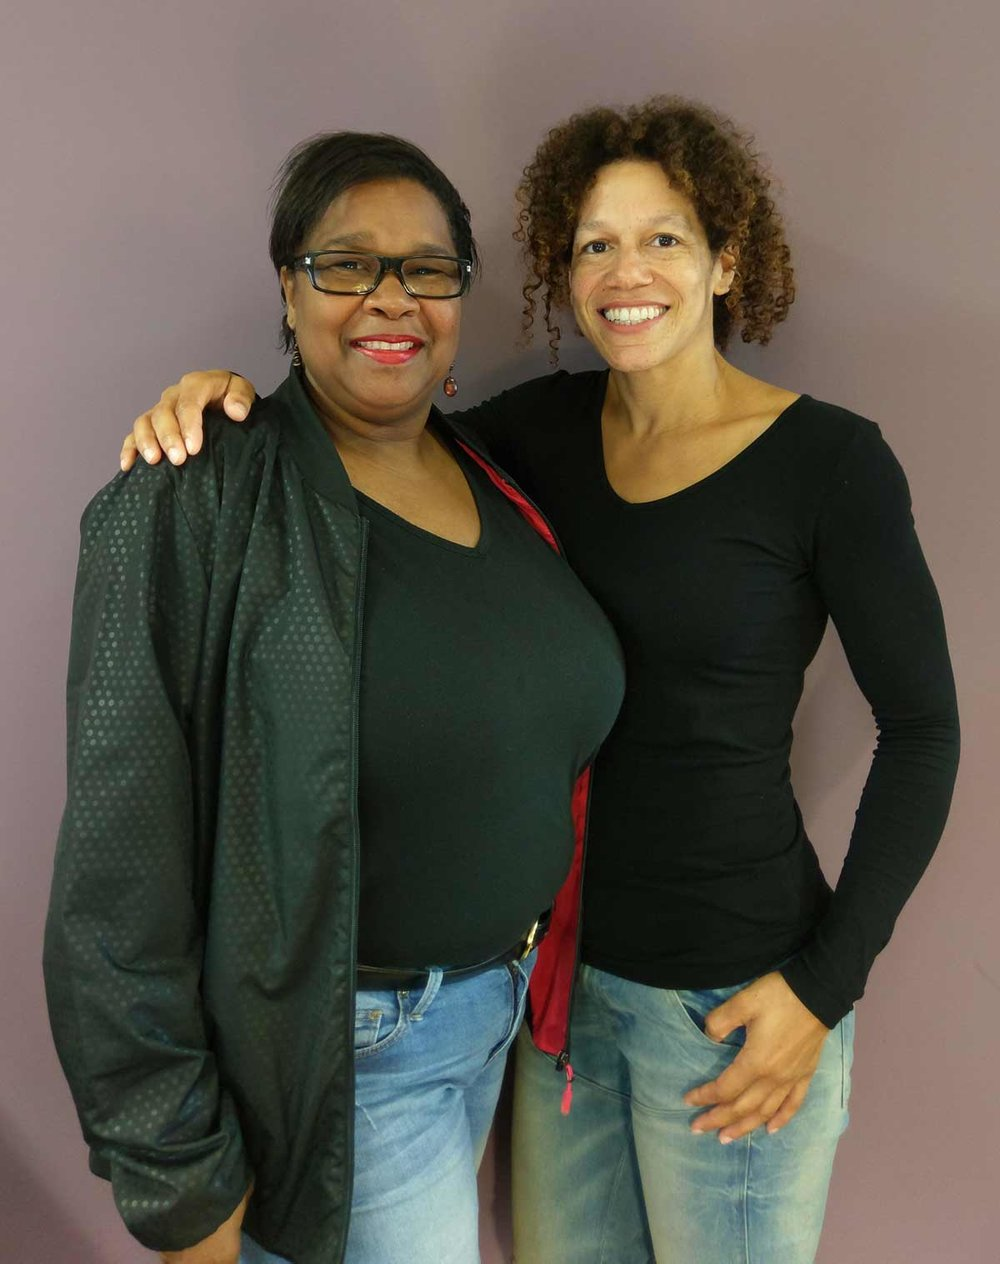 Health Coach Dawn Shepherd (on the right) gives Missy Searl tools and motivation to help prevent type 2 diabetes. SUPPLIED